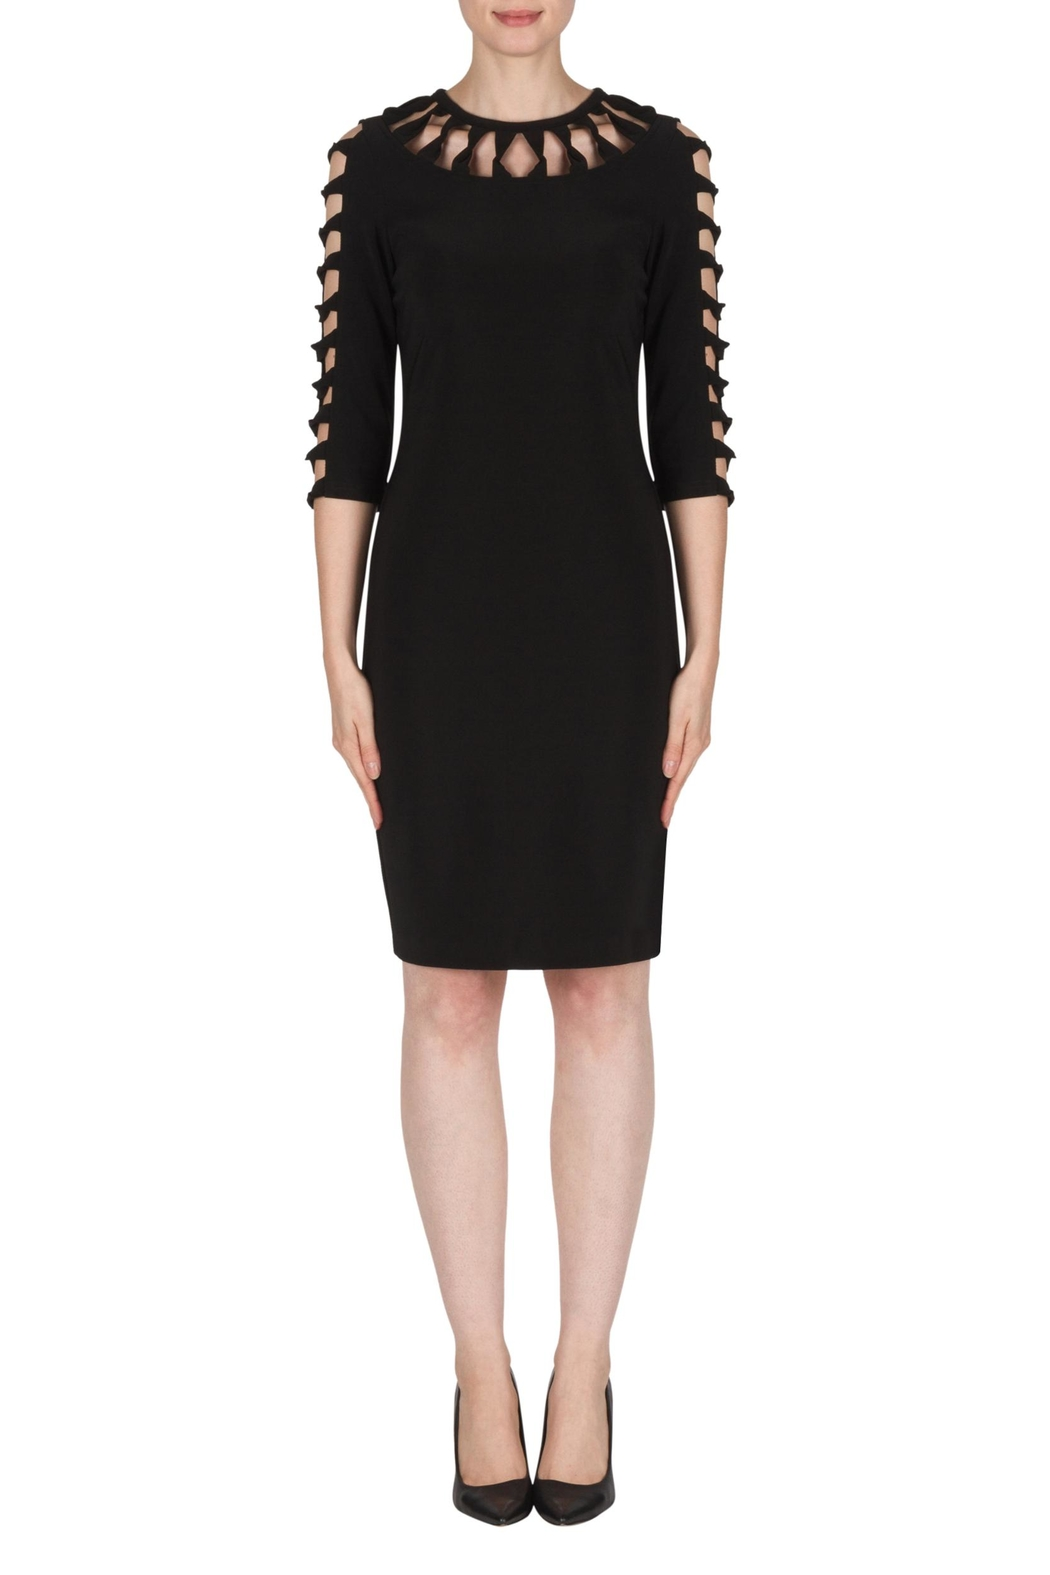 Joseph Ribkoff Black Cut-Outs Dress - Front Cropped Image